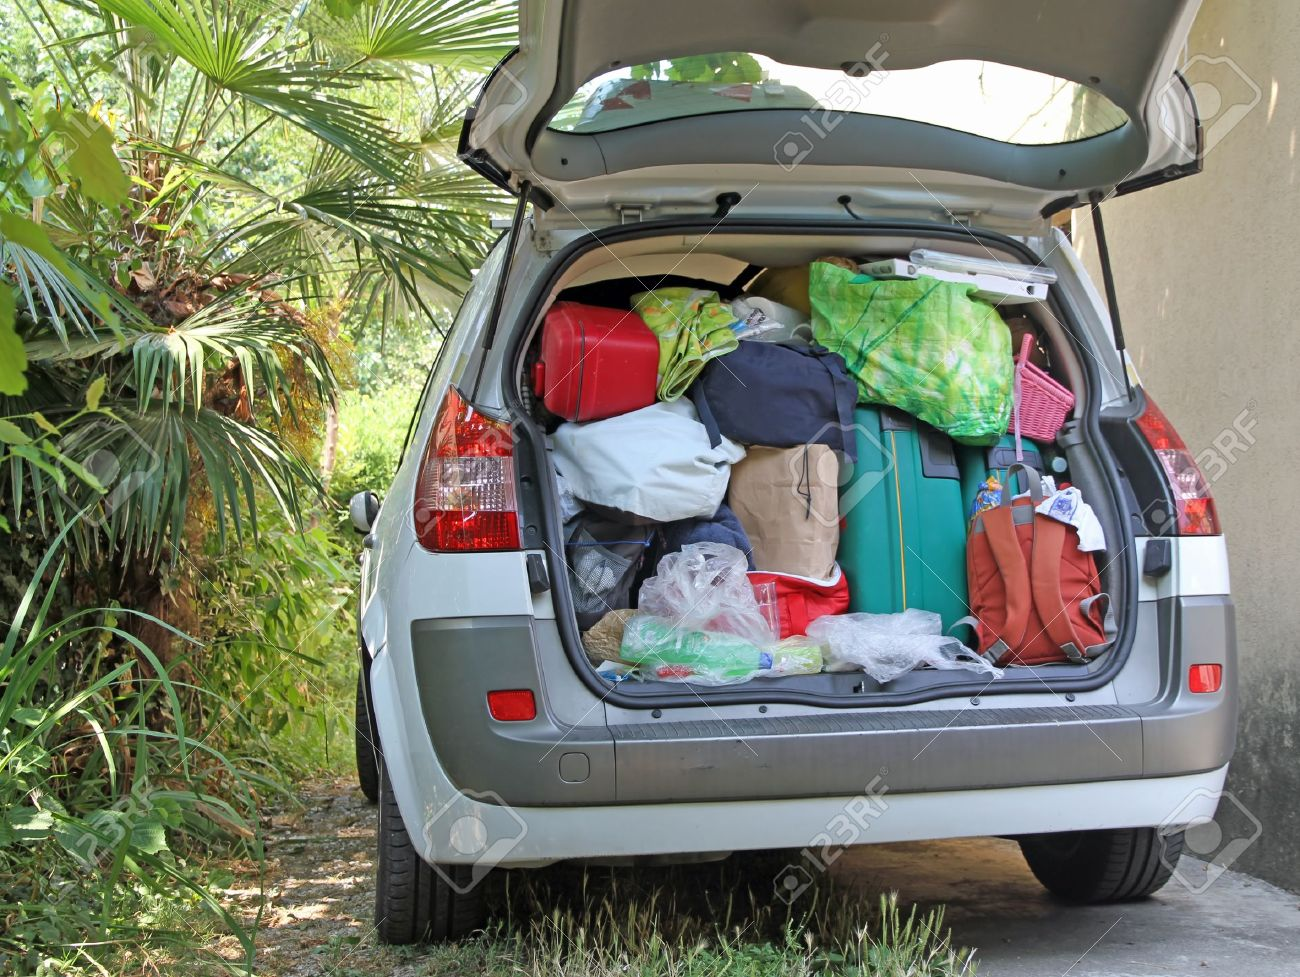 Car Very Full Of Suitcases And Bags Before Leaving For Summer